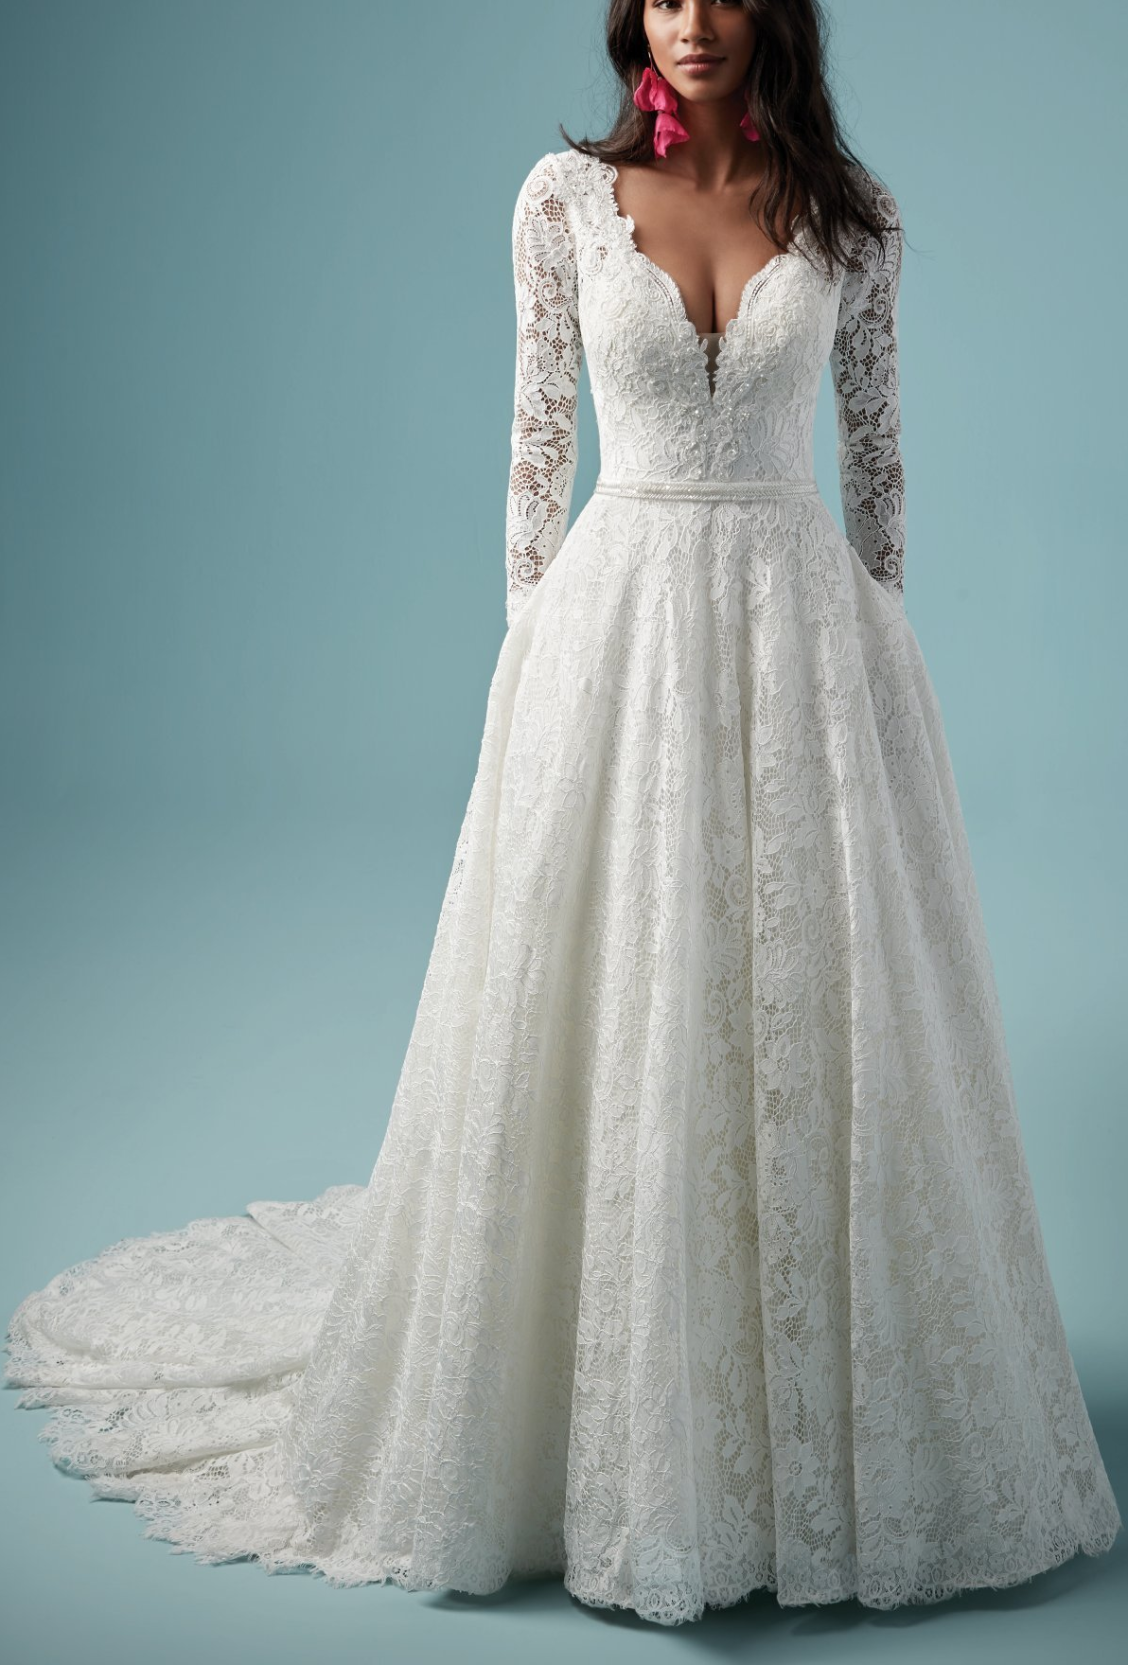 TERRY by Maggie Sottero Wedding Dresses in 2020 Maggie